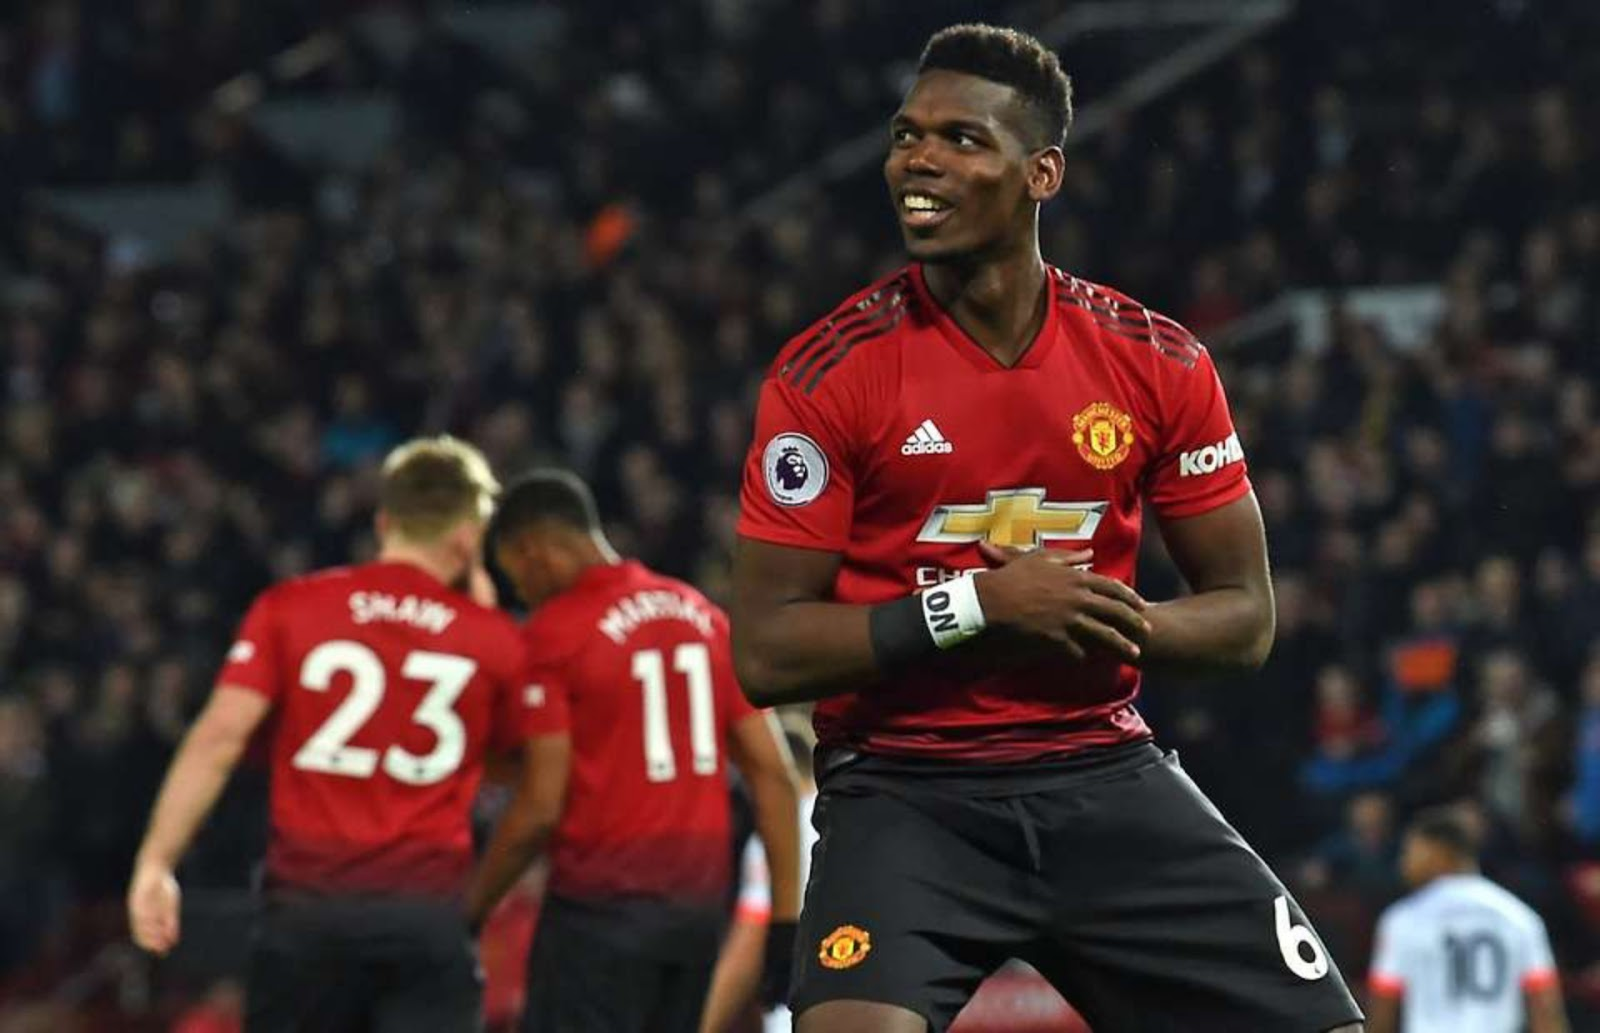 Pogba returns to Man Utd squad for Watford fixture after recovering from injury